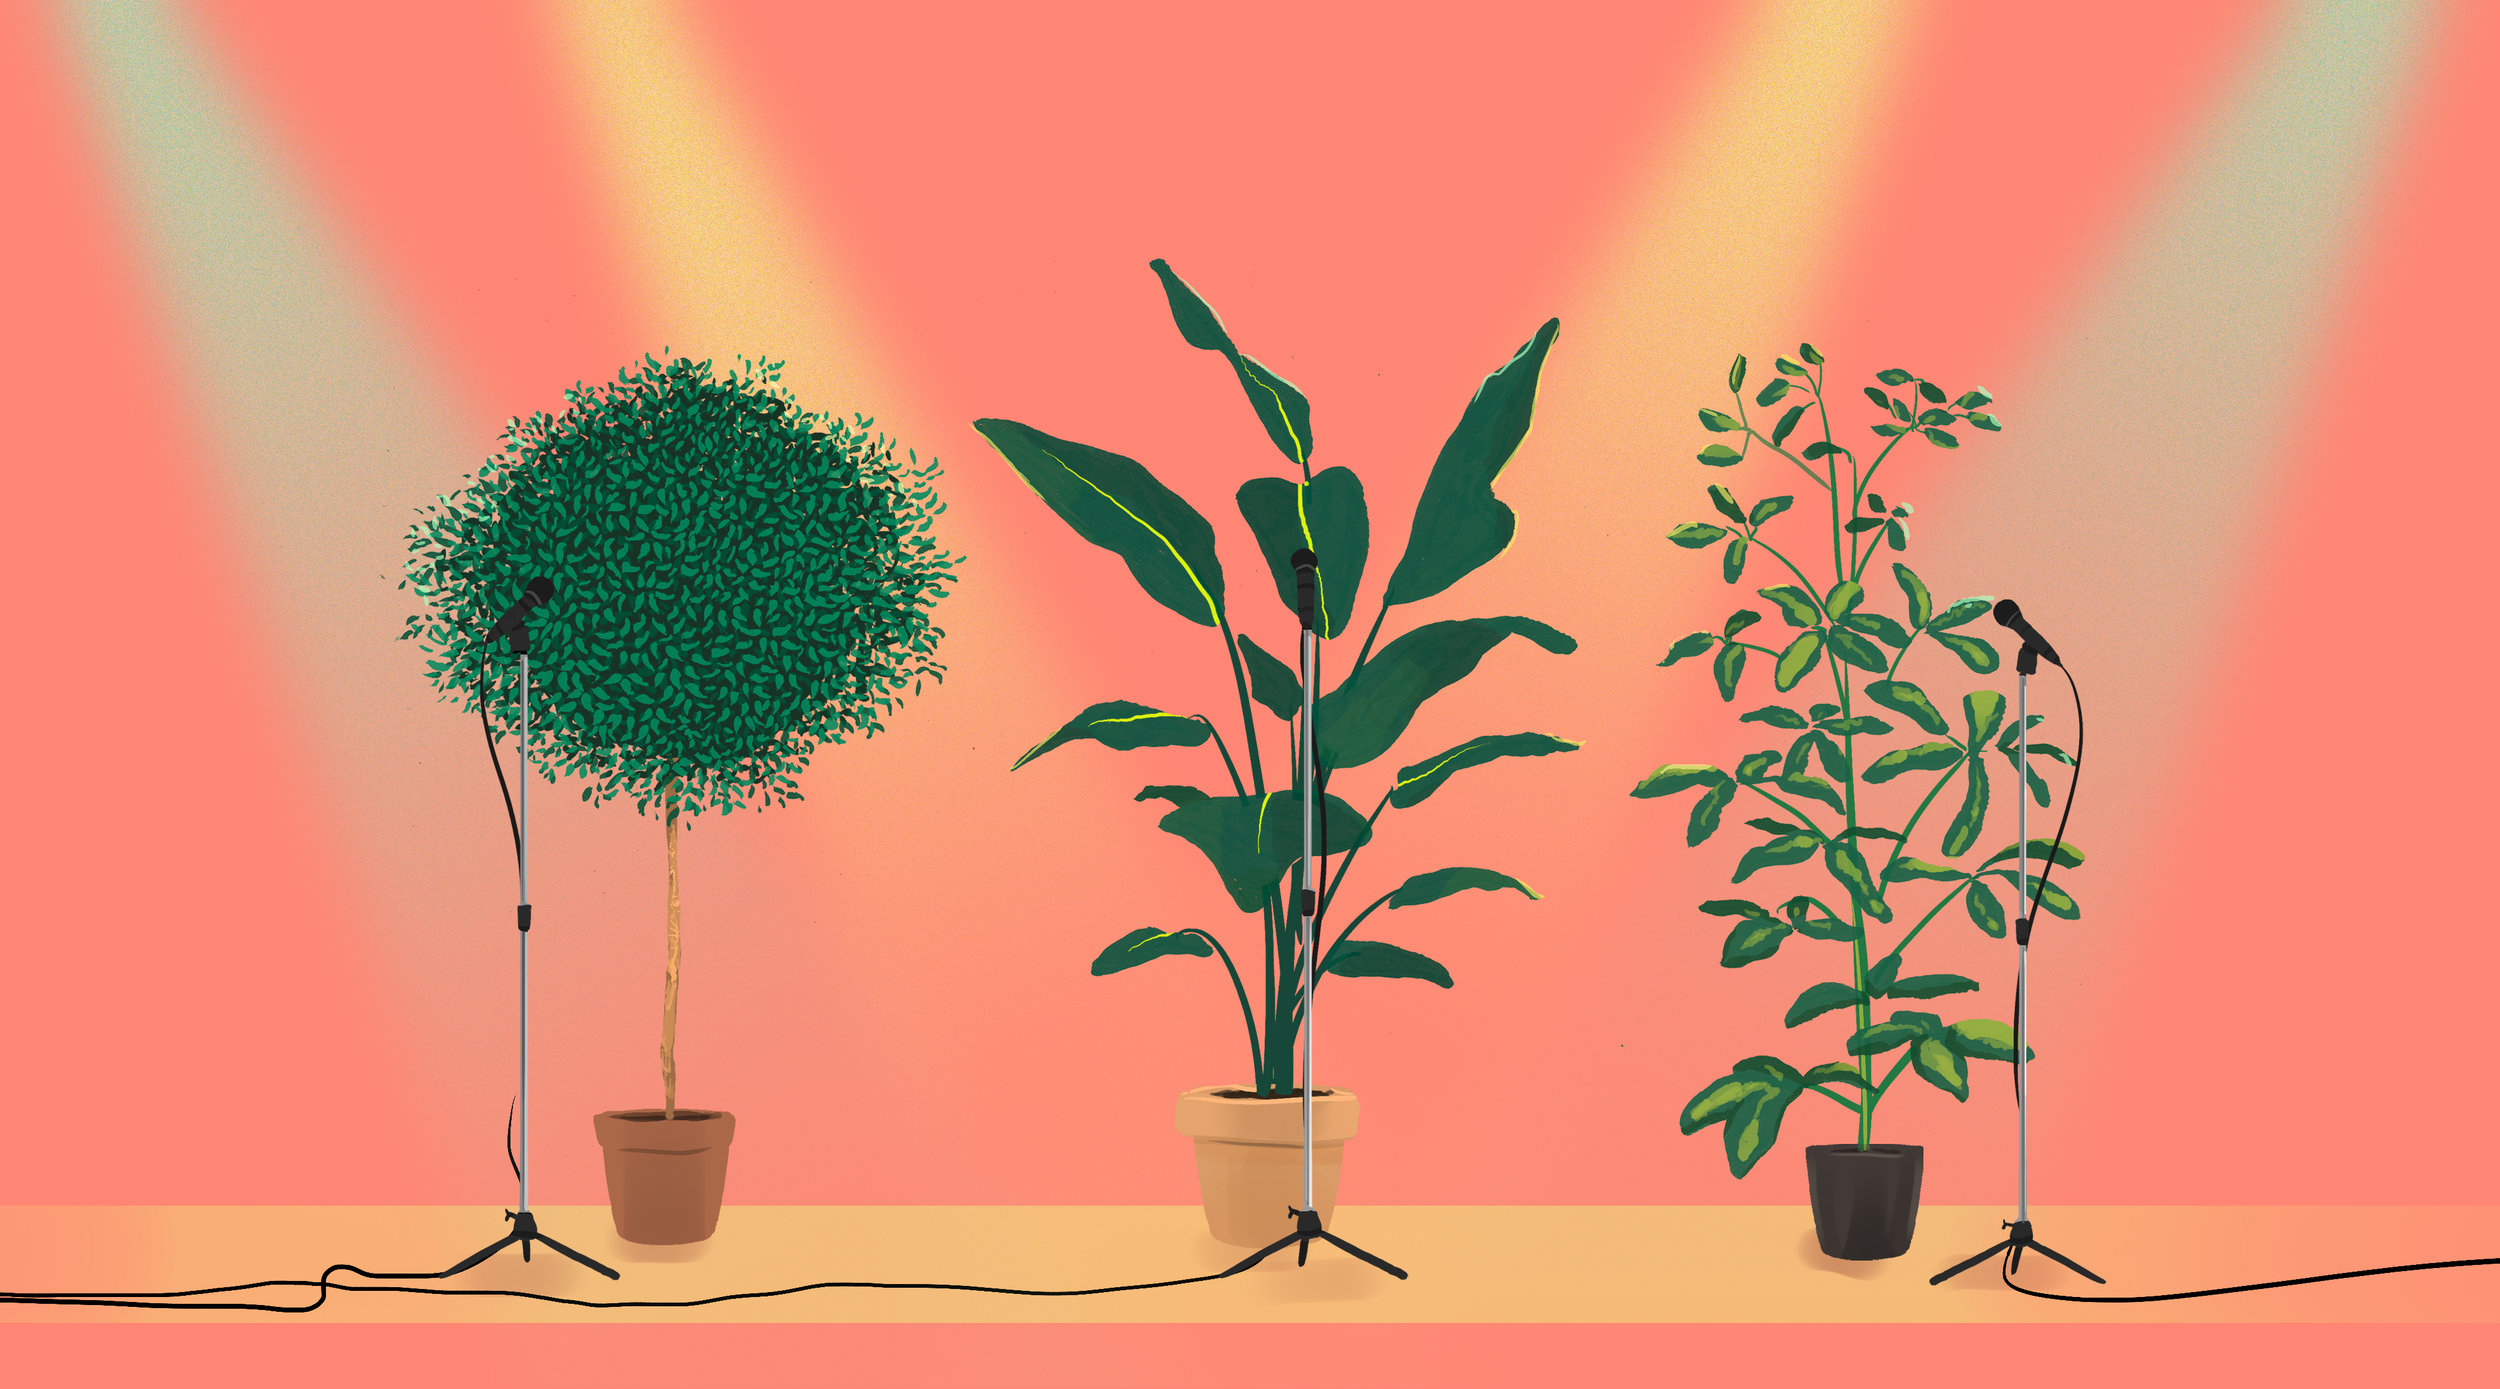 Study Suggests Plants Have Some of the Same Senses as Animals and Make Sounds Humans Can't Hear but Wildlife Can